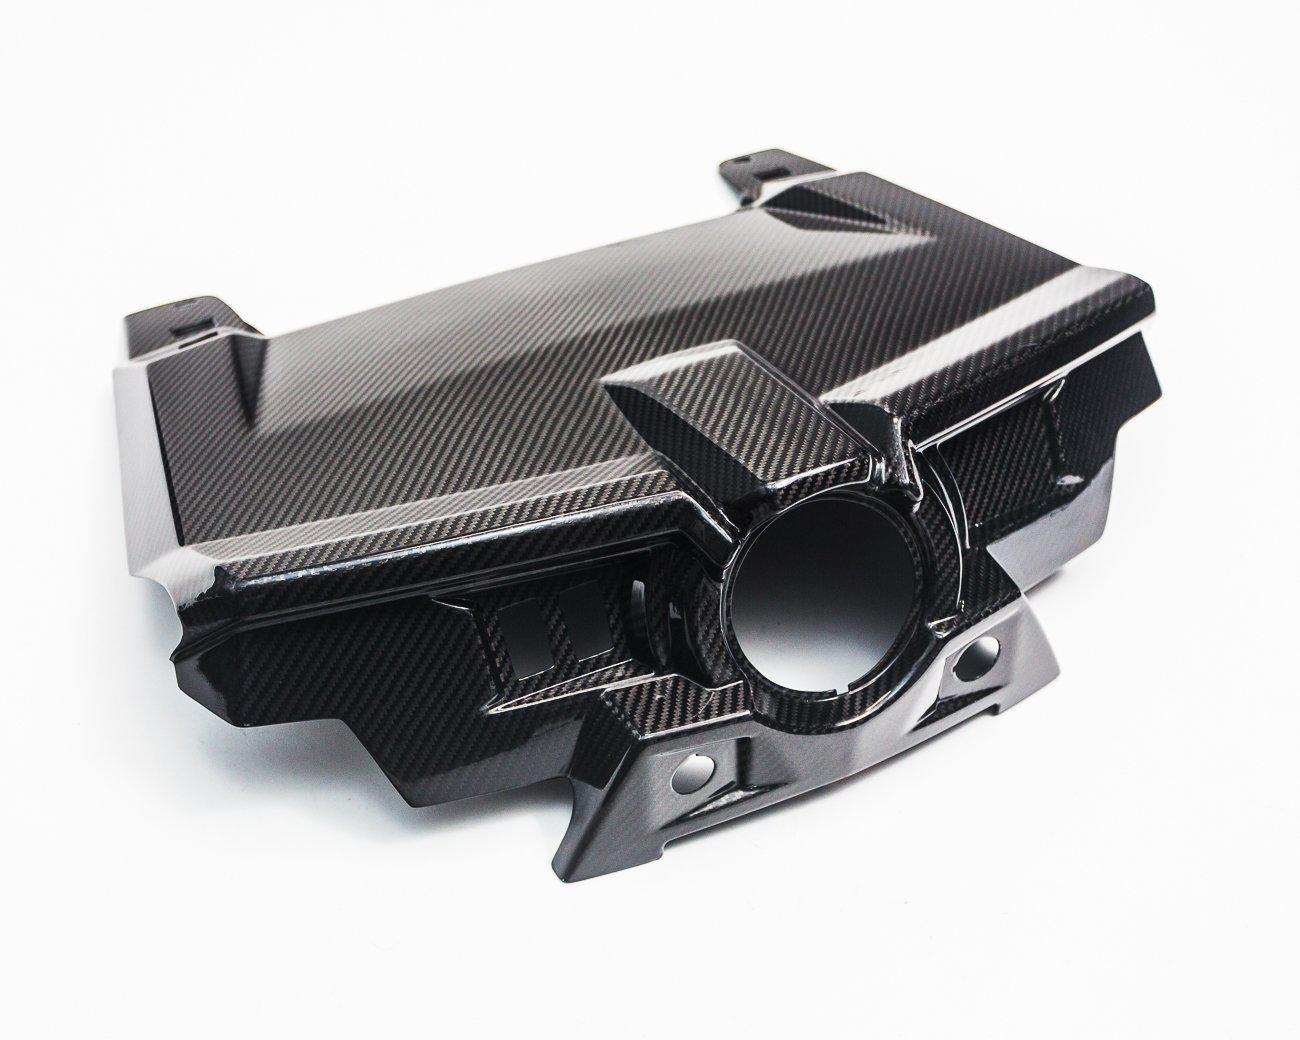 Agency Power Carbon Fiber Dash Polaris RZR XP 1000 | Turbo 14-16-Chassis-Agency Power-None-Black Market UTV